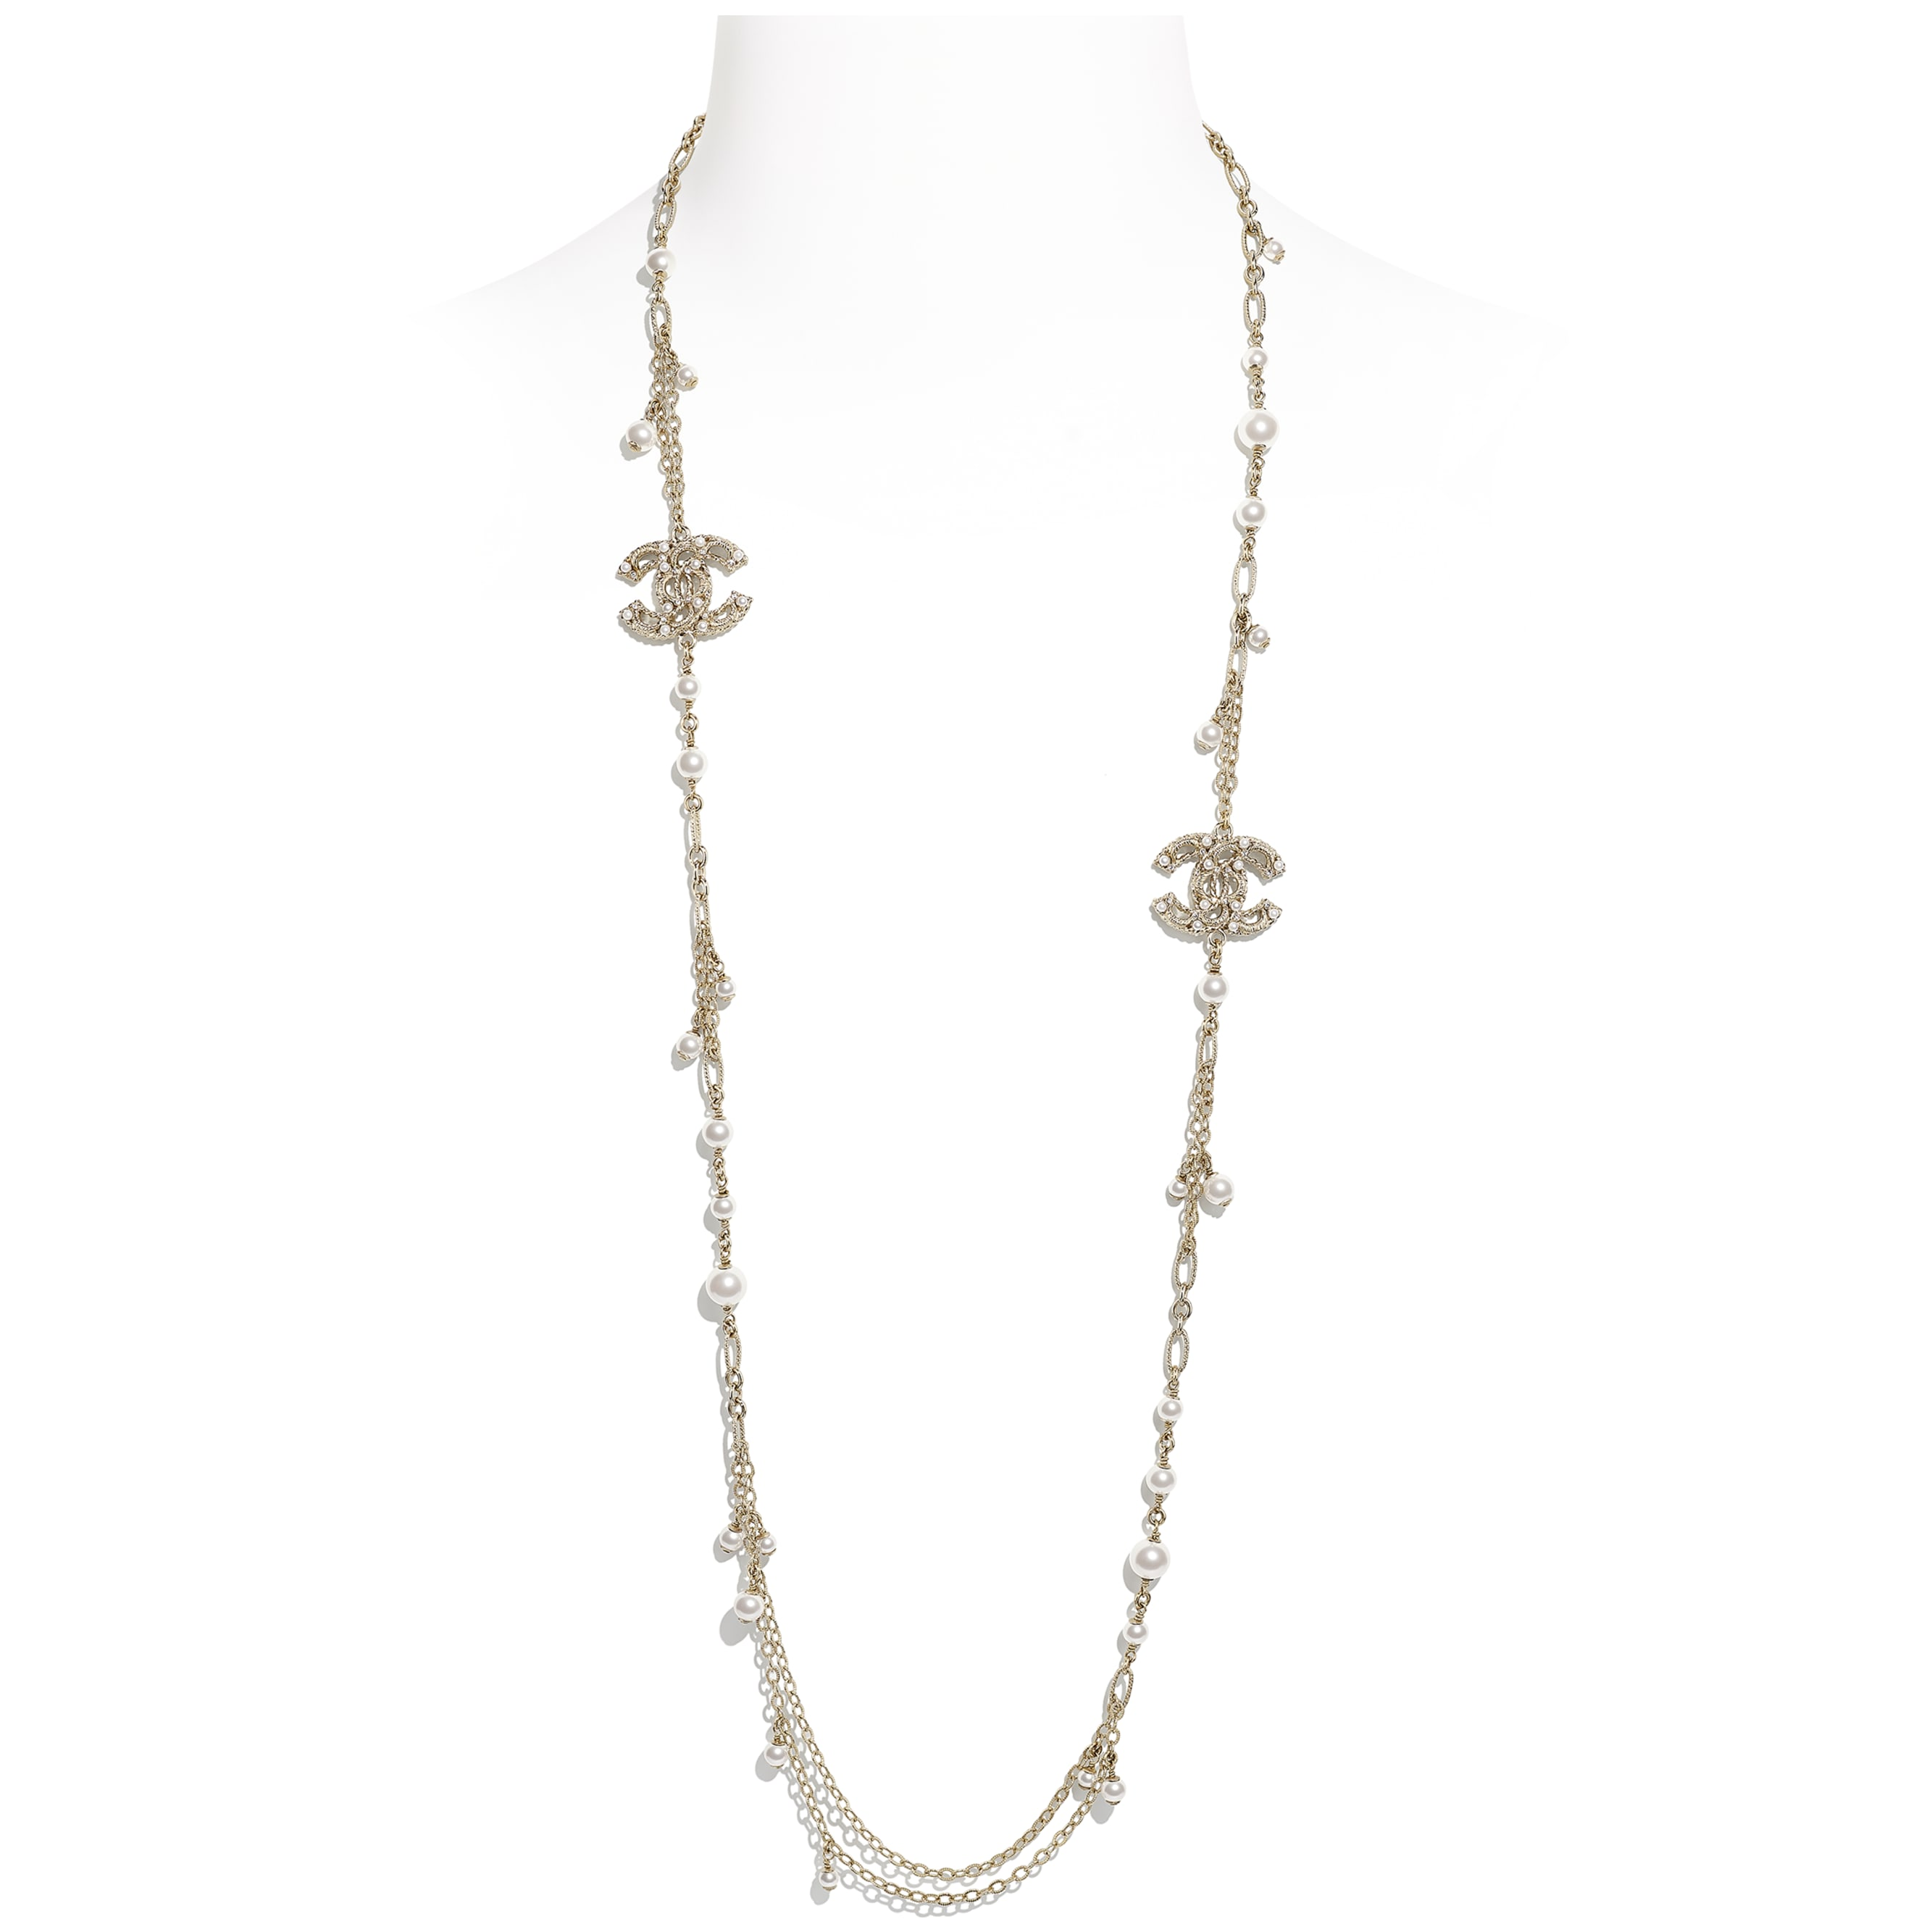 Long Necklace - Gold, Pearly White & Crystal - Metal, Glass Pearls & Diamantés - CHANEL - Default view - see standard sized version